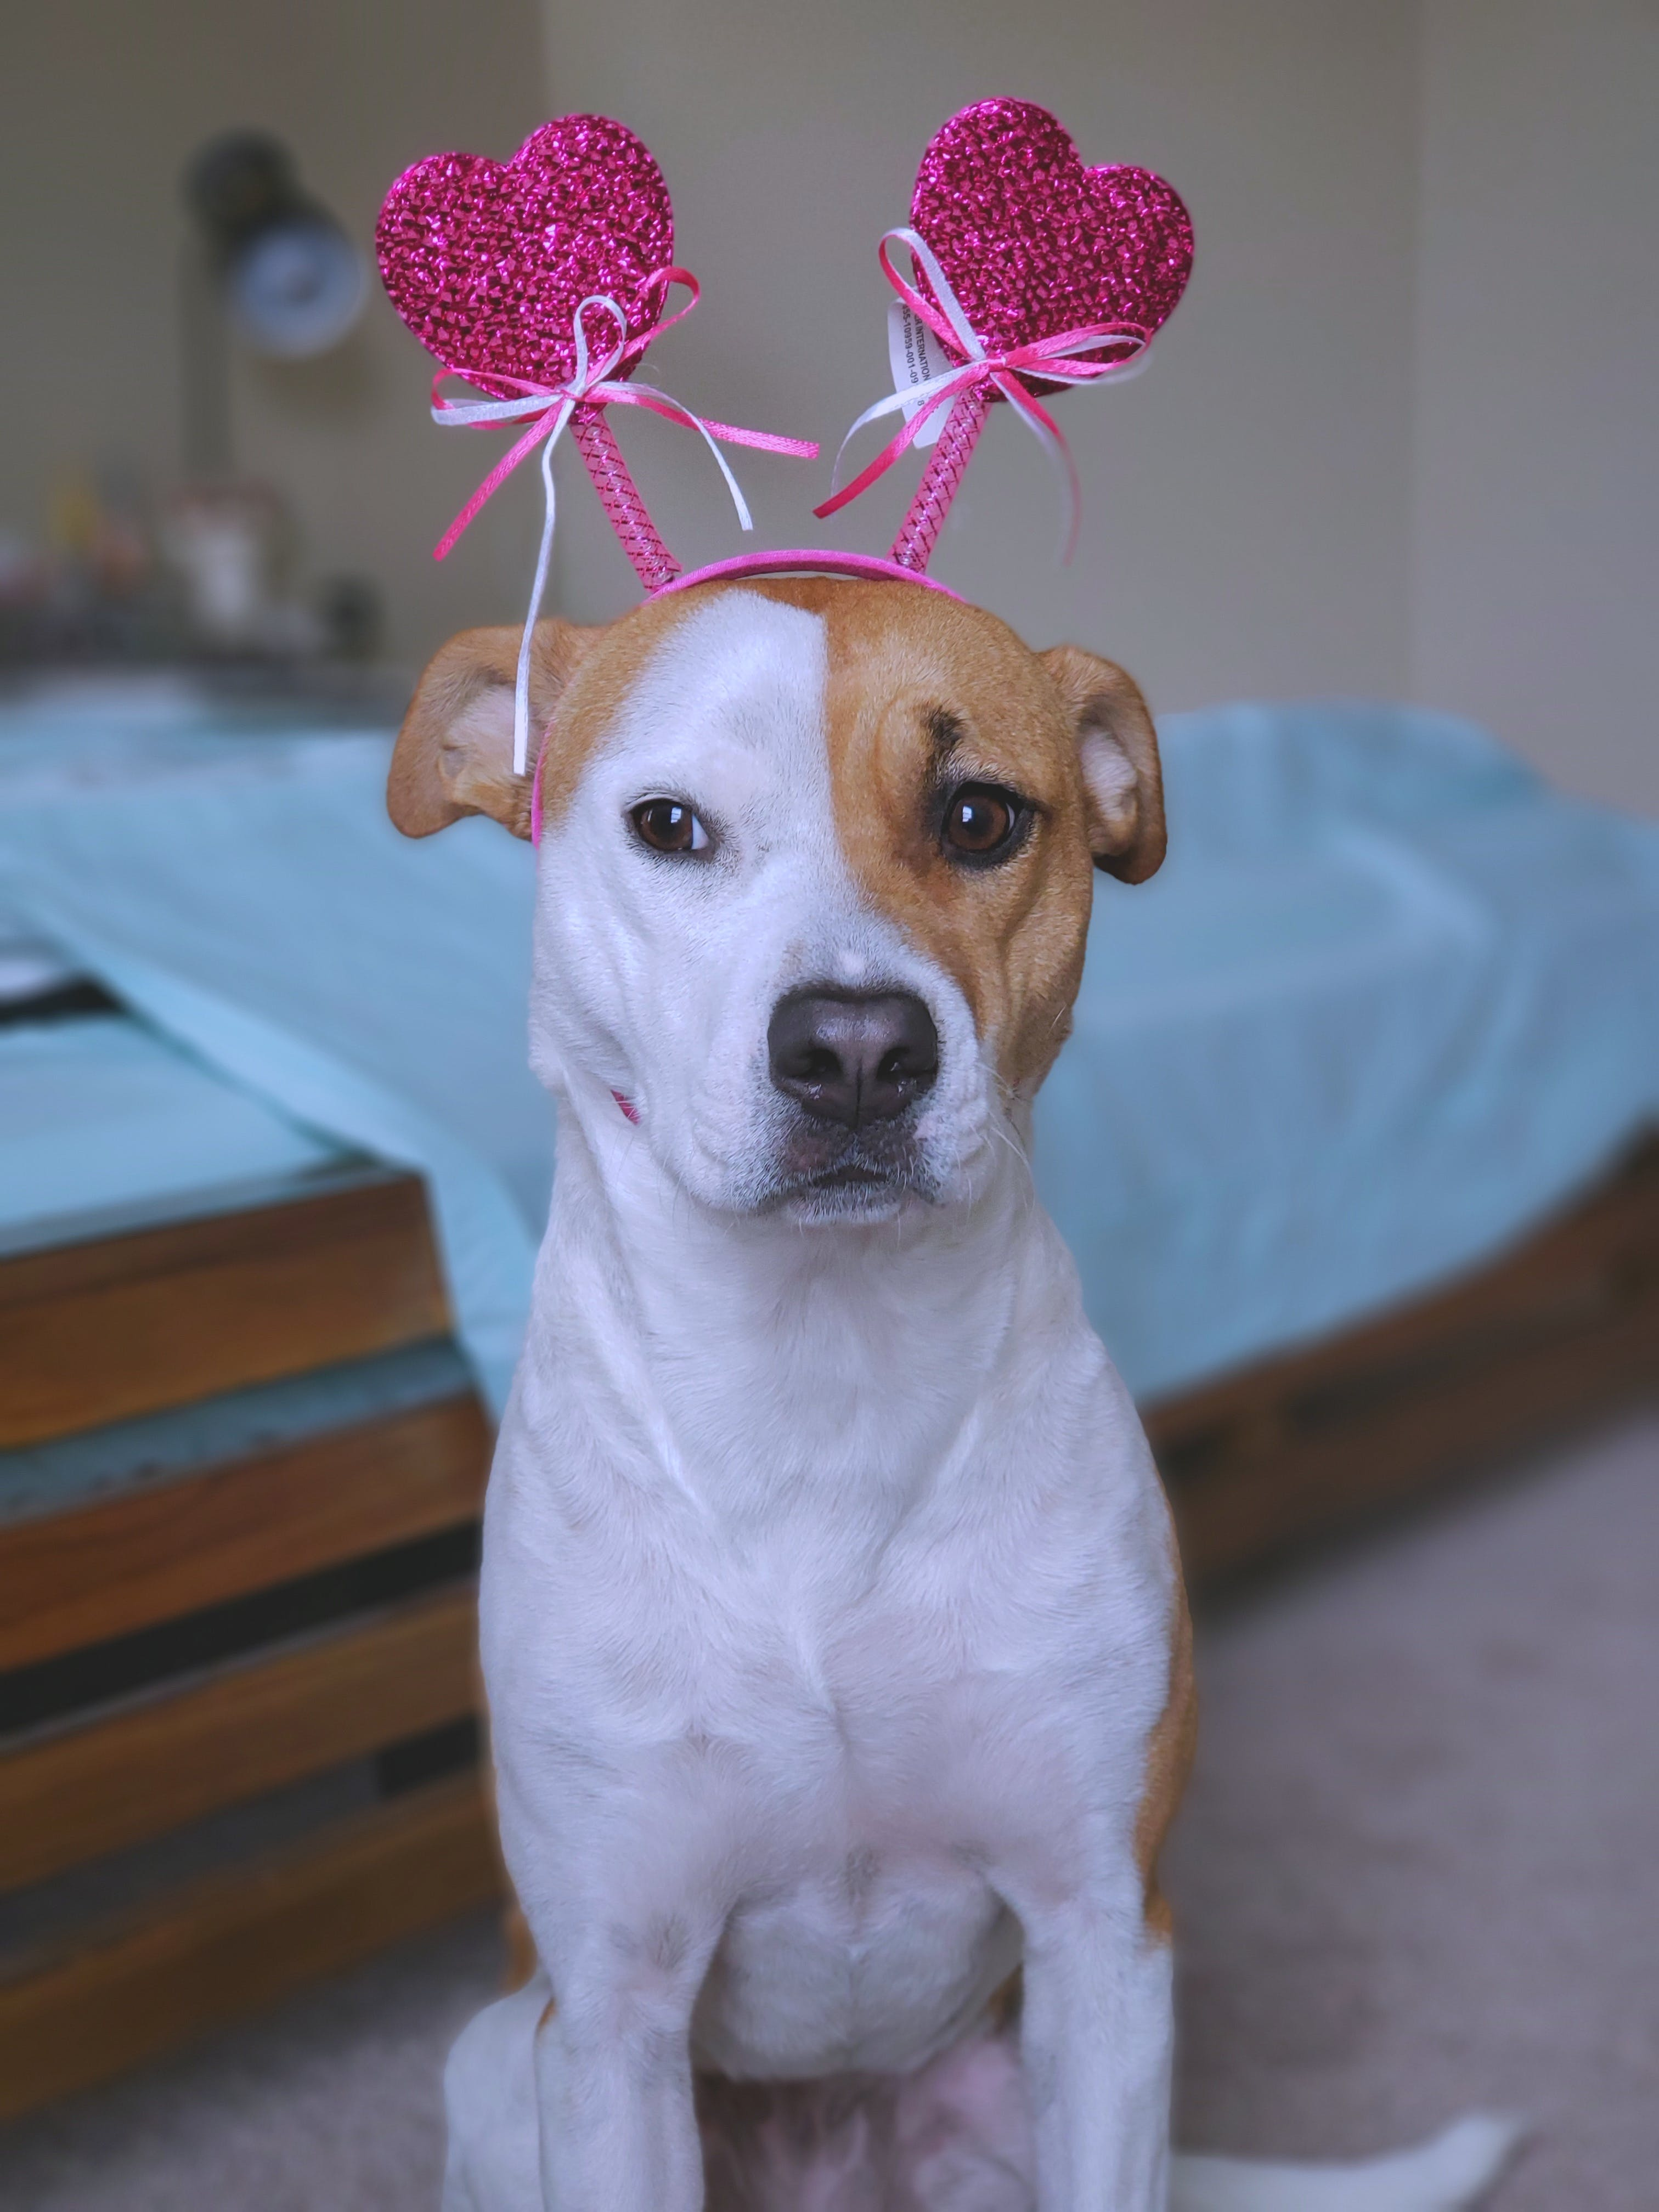 Free stock photo of dog, dogs, happy valentines day, Mutt